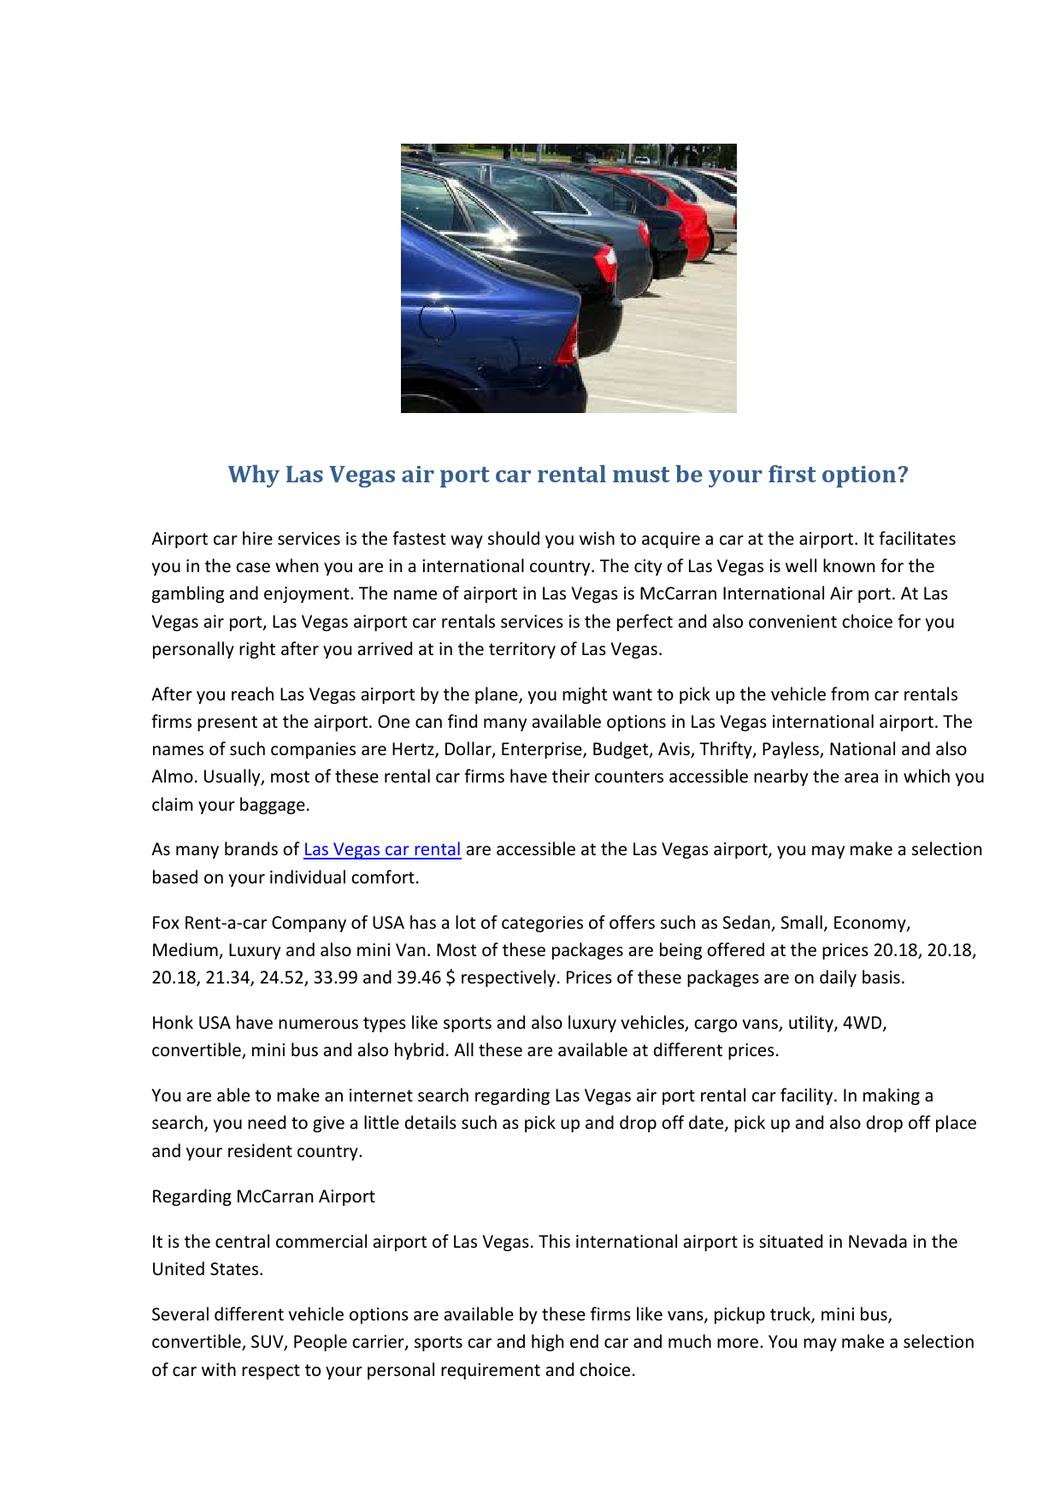 Why Las Vegas Air Port Car Rental Must Be Your First Option By